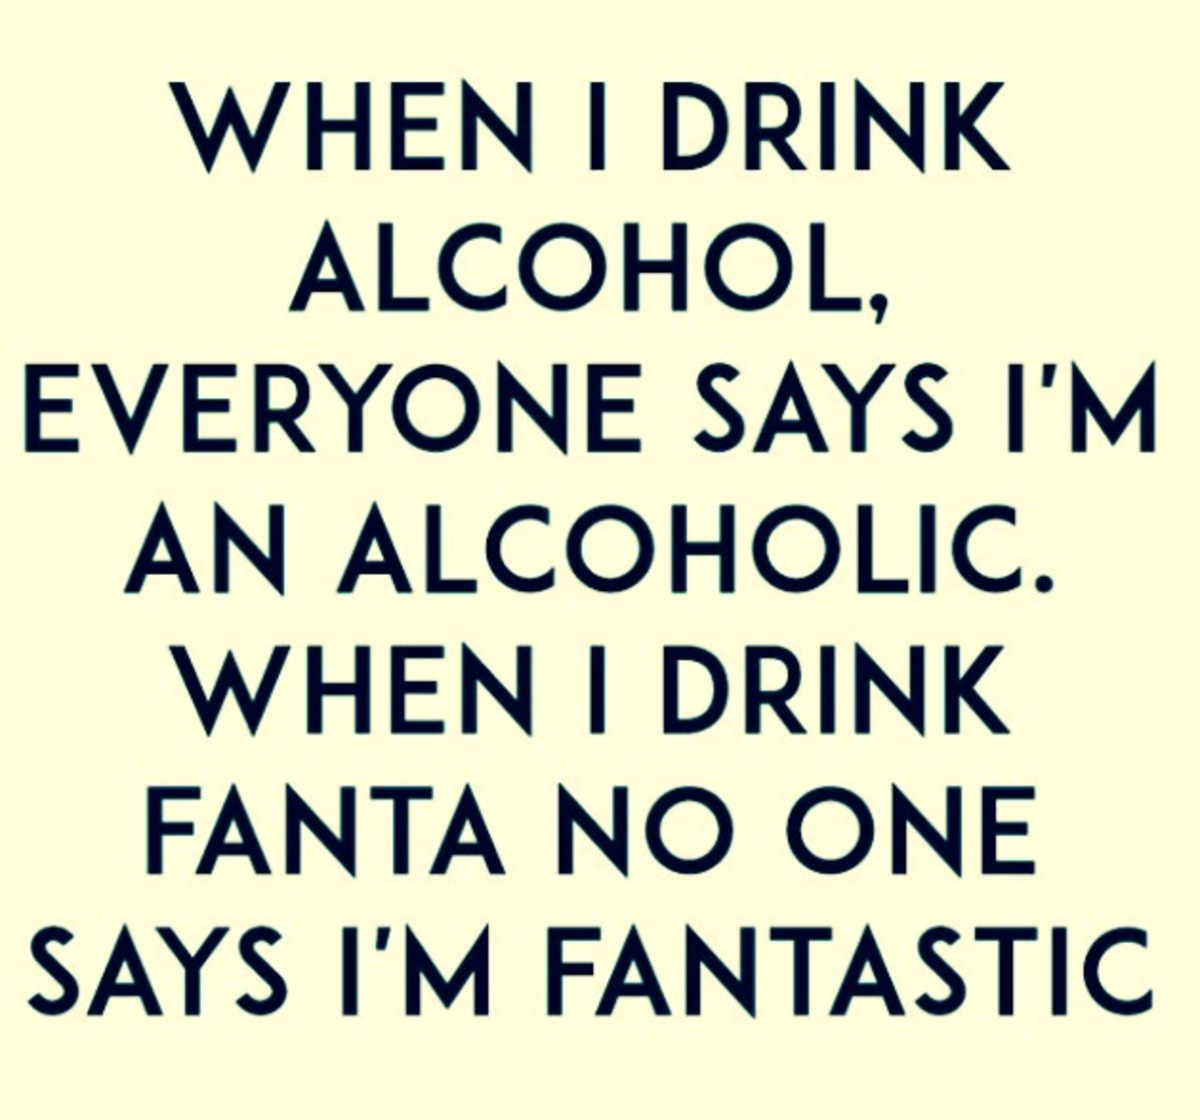 Funny Facebook Statuses and Memes About Partying, Drinking and Big ...